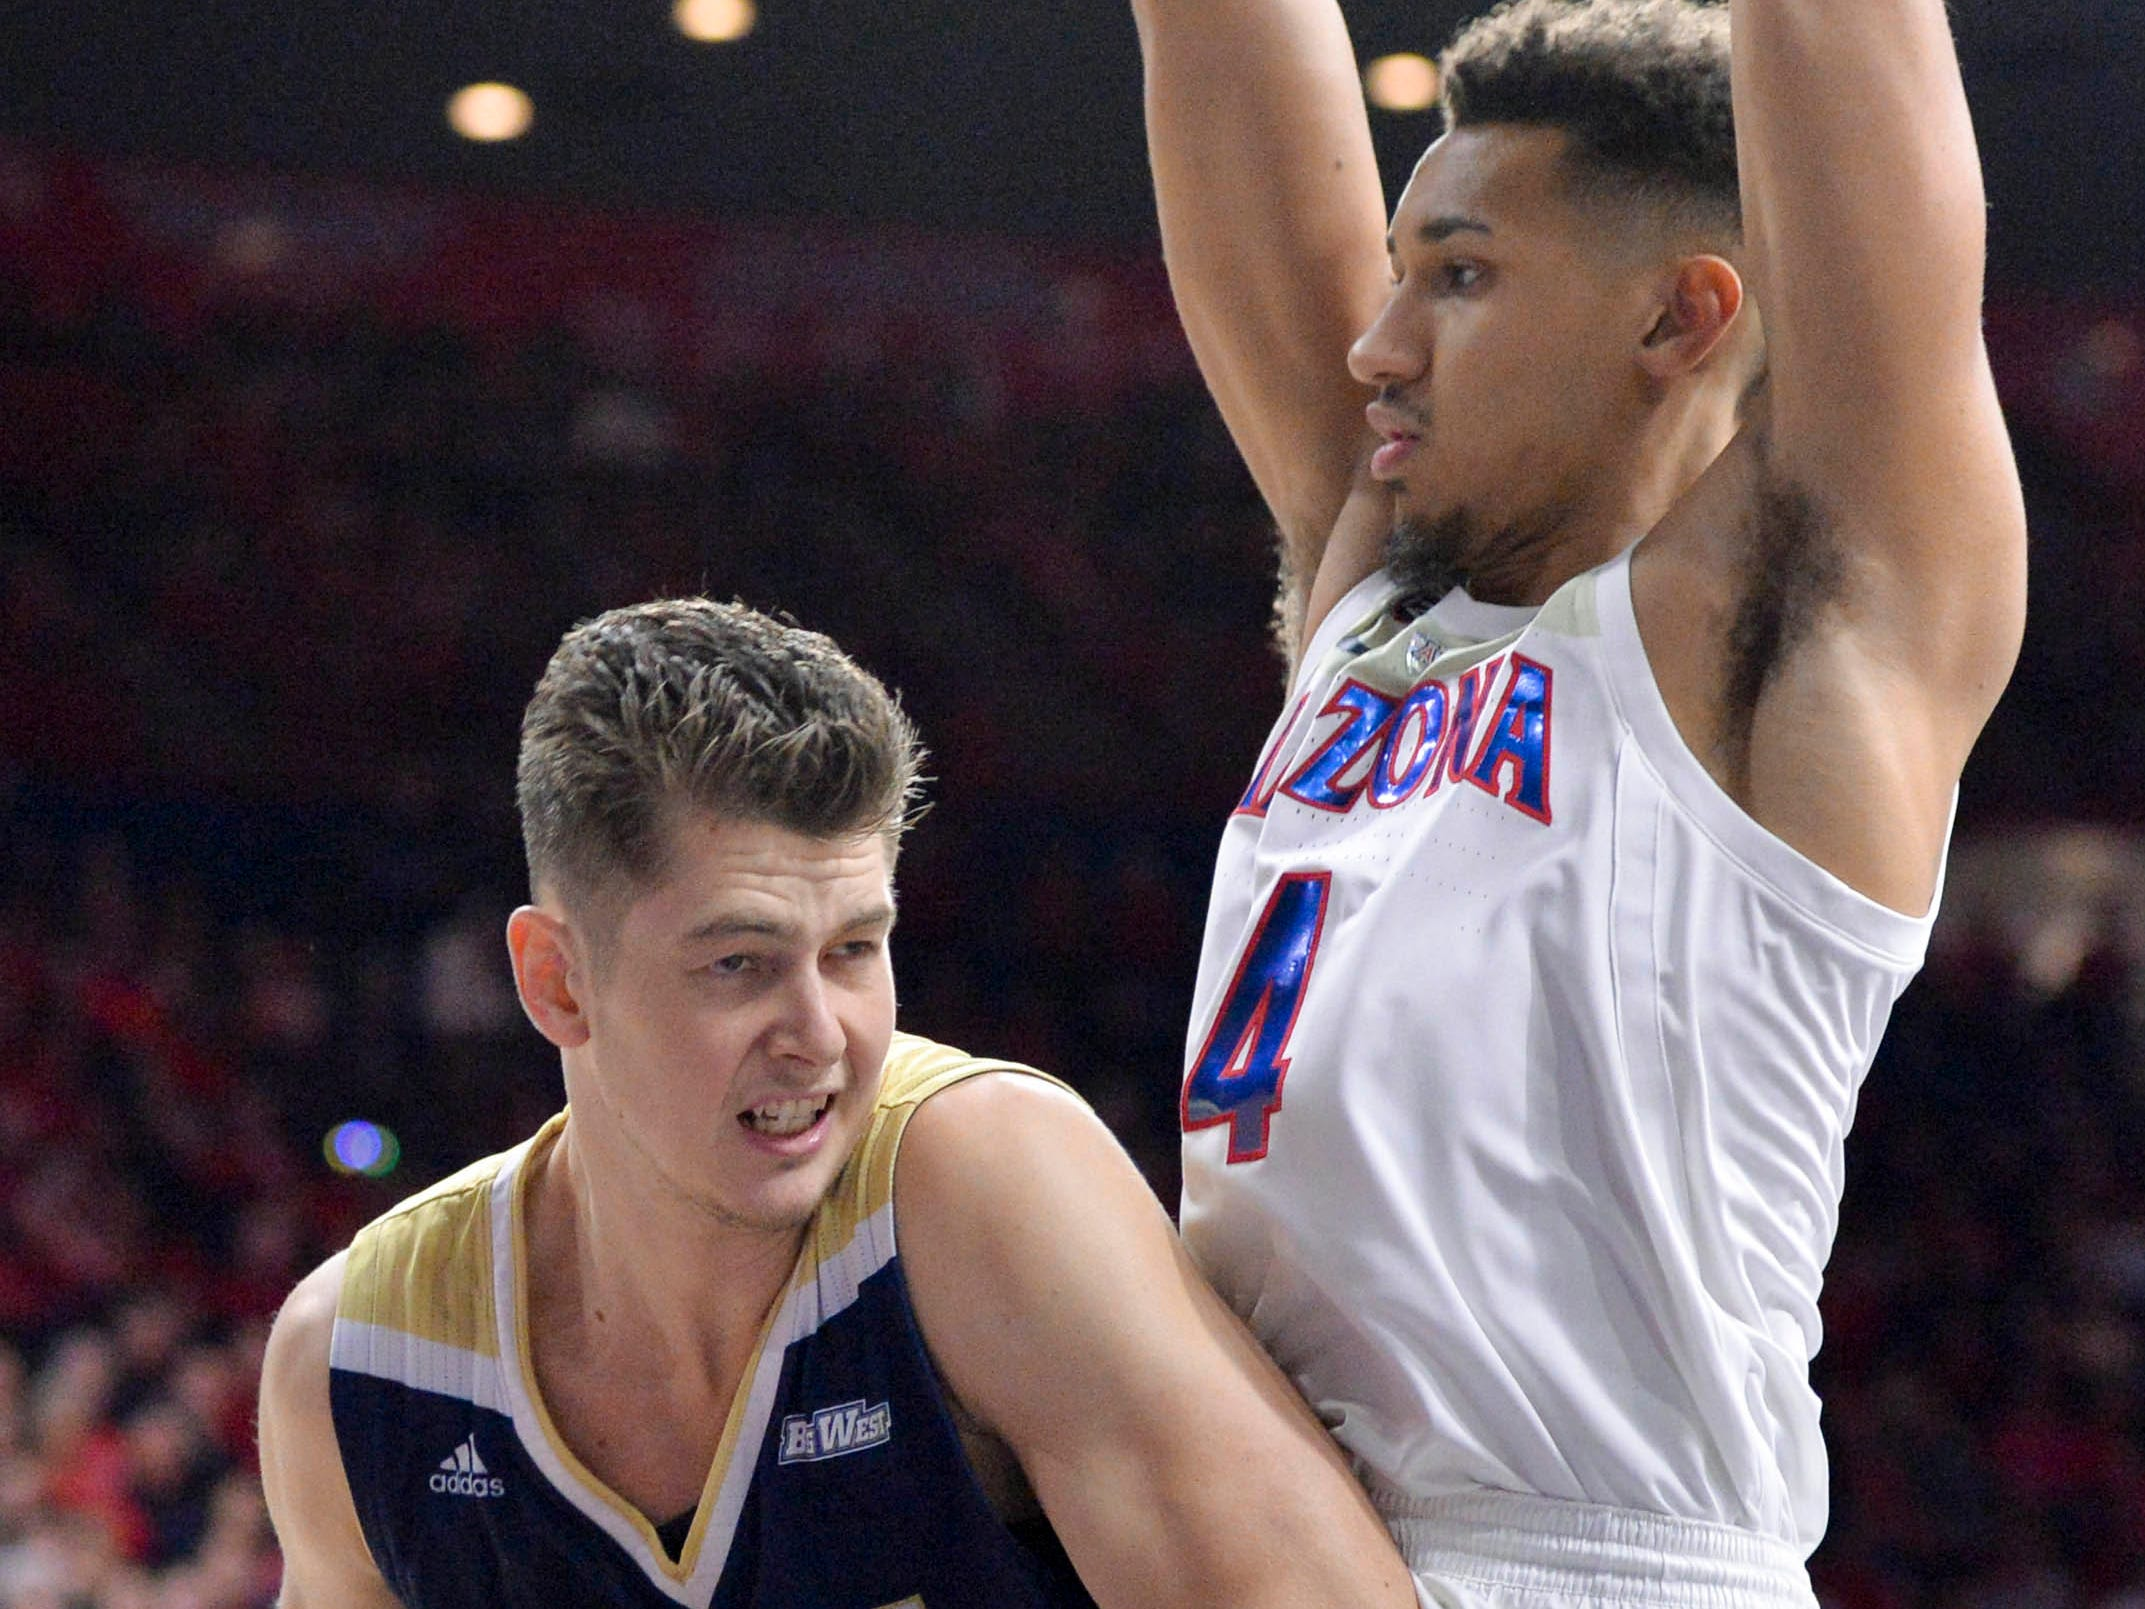 Dec 22, 2018; Tucson, AZ, USA; UC Davis Aggies center Matt Neufeld (13) is defended by Arizona Wildcats center Chase Jeter (4) during the first half at McKale Center. Mandatory Credit: Casey Sapio-USA TODAY Sports